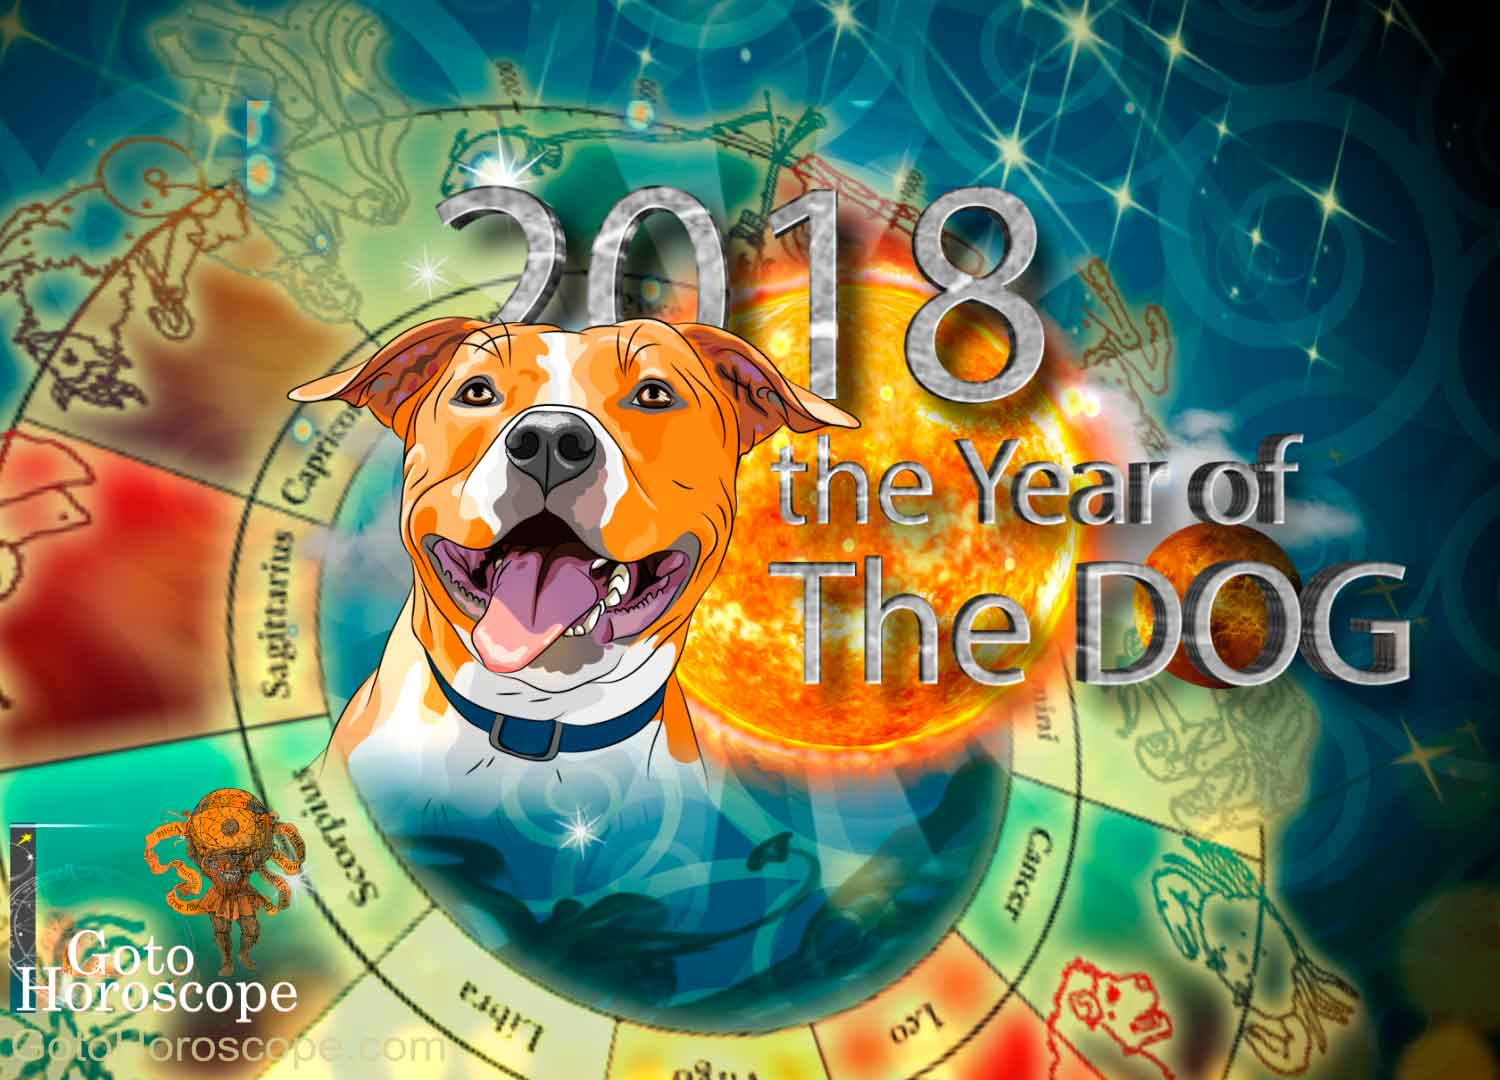 Dragon Horoscope 12222 Predictions For Year Of The Pig Chinese Zodiac